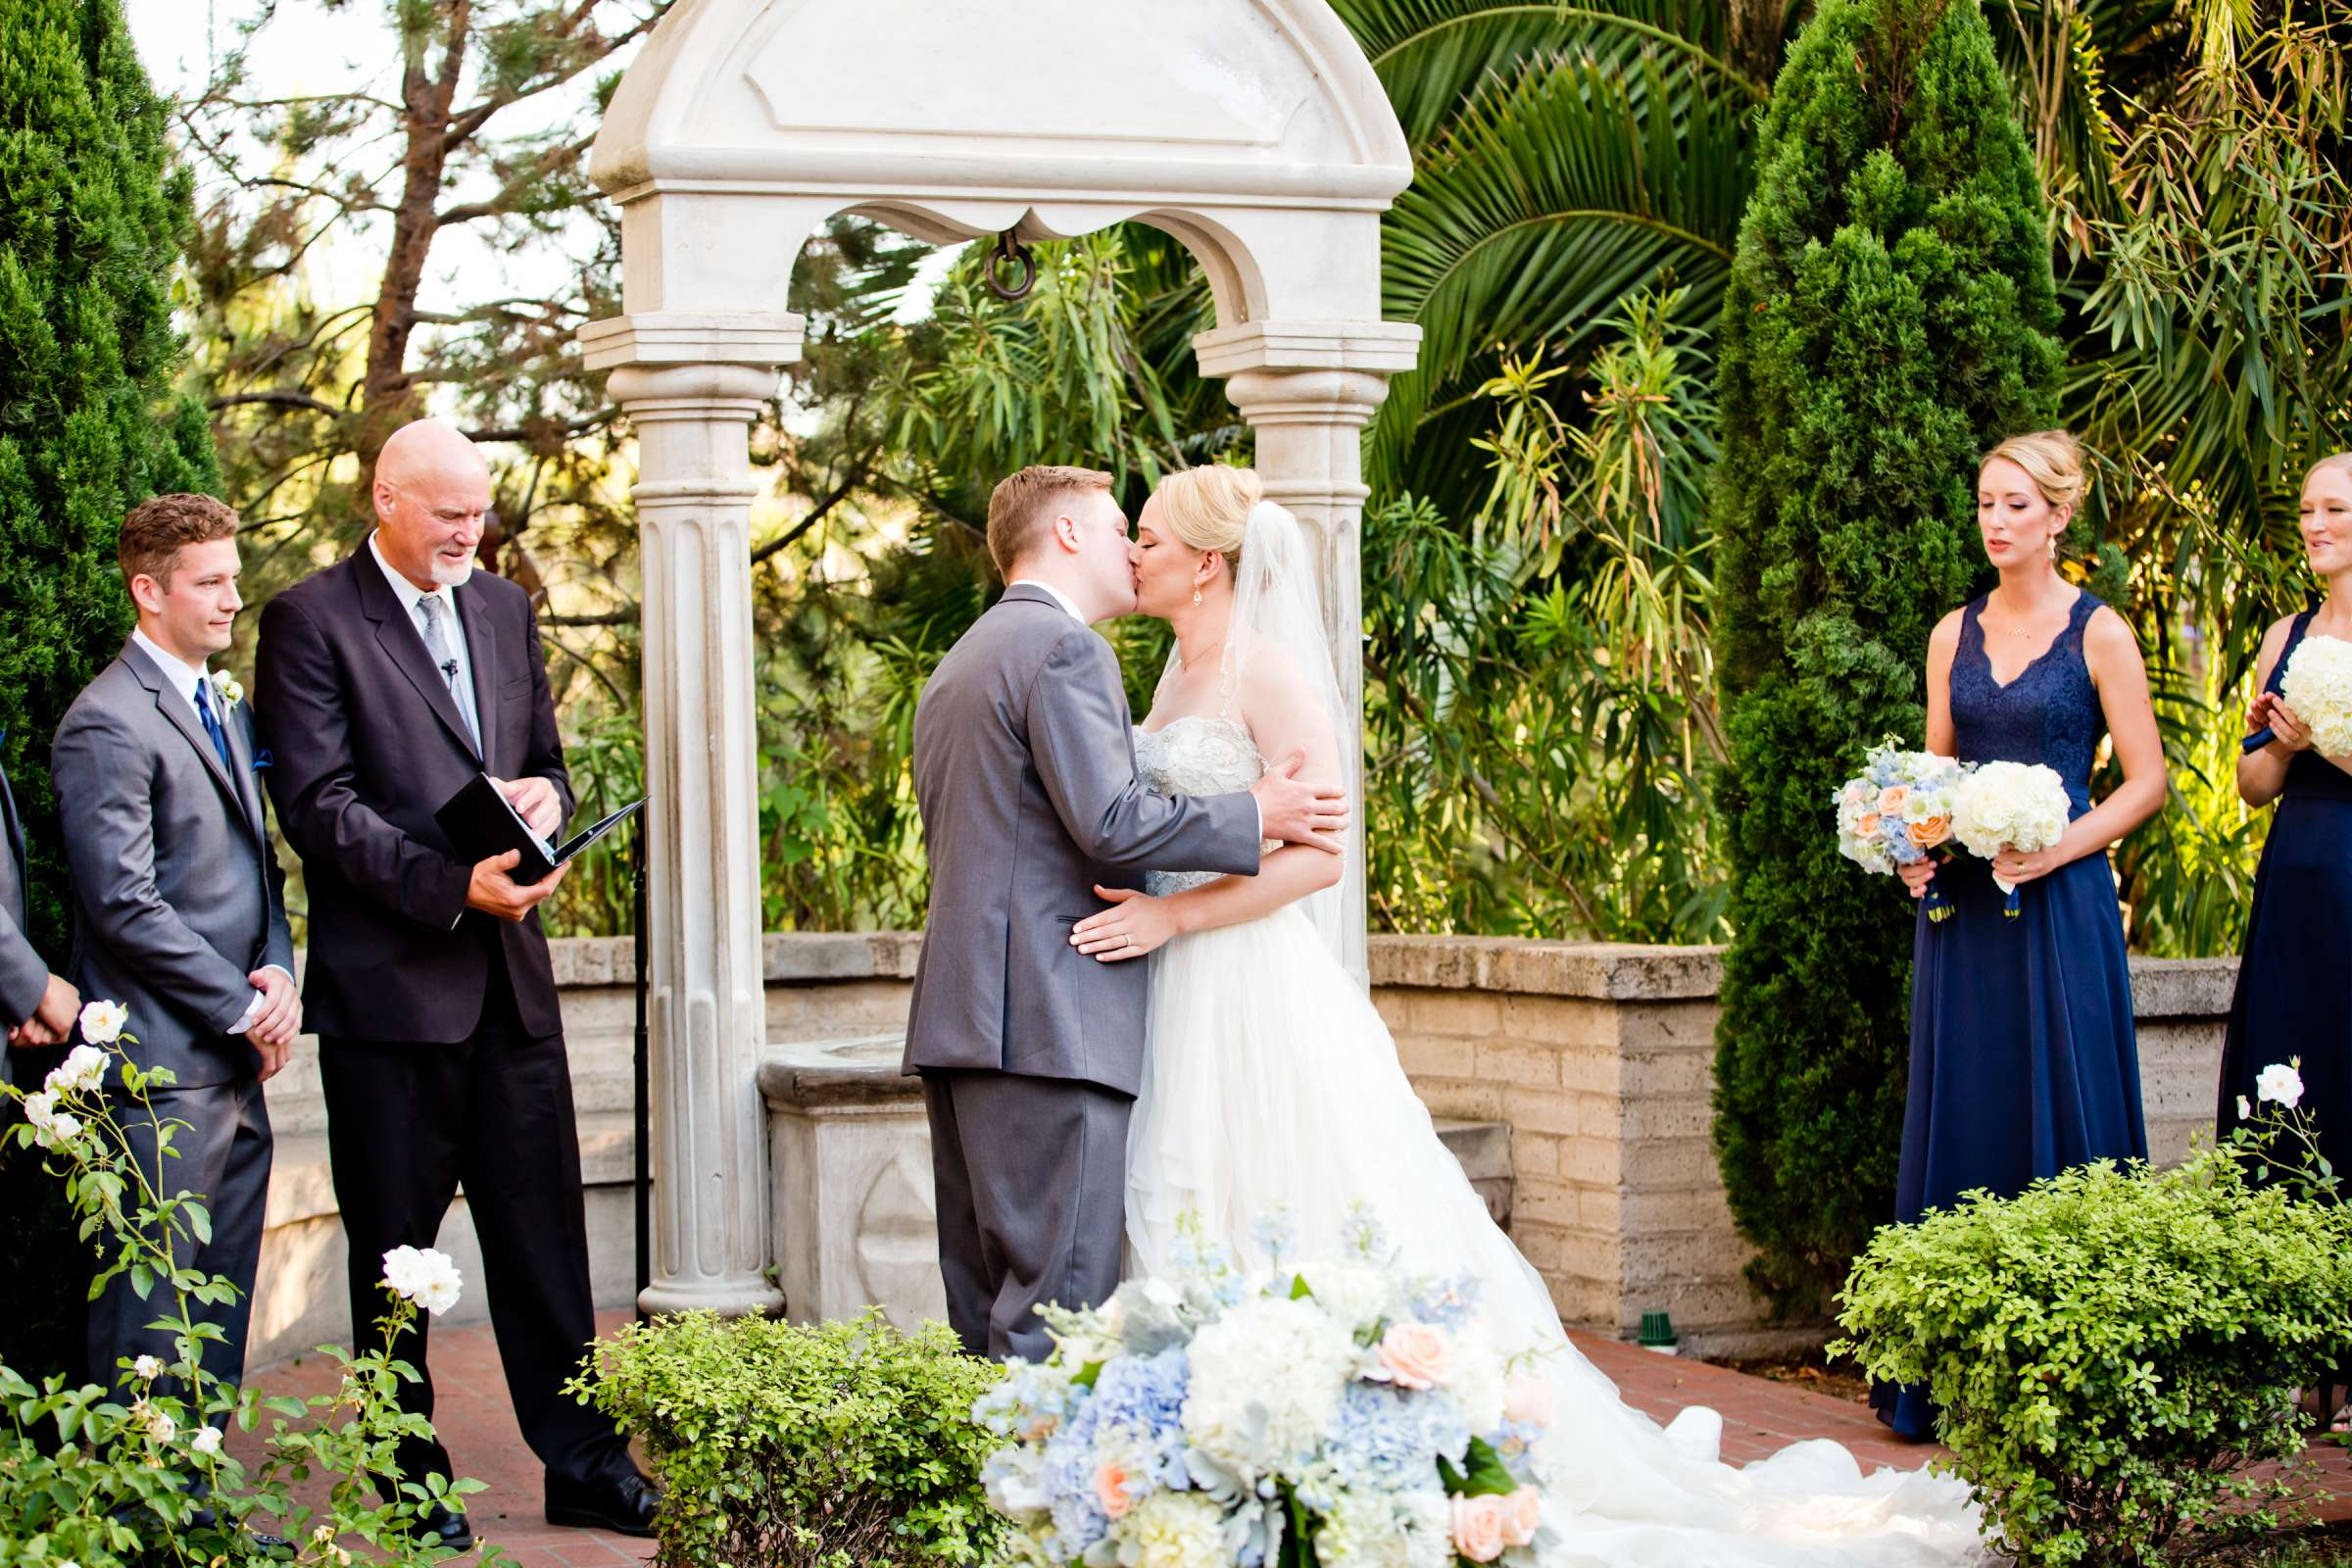 The Prado Wedding coordinated by Sublime Weddings, Ashley and Andrew Wedding Photo #37 by True Photography